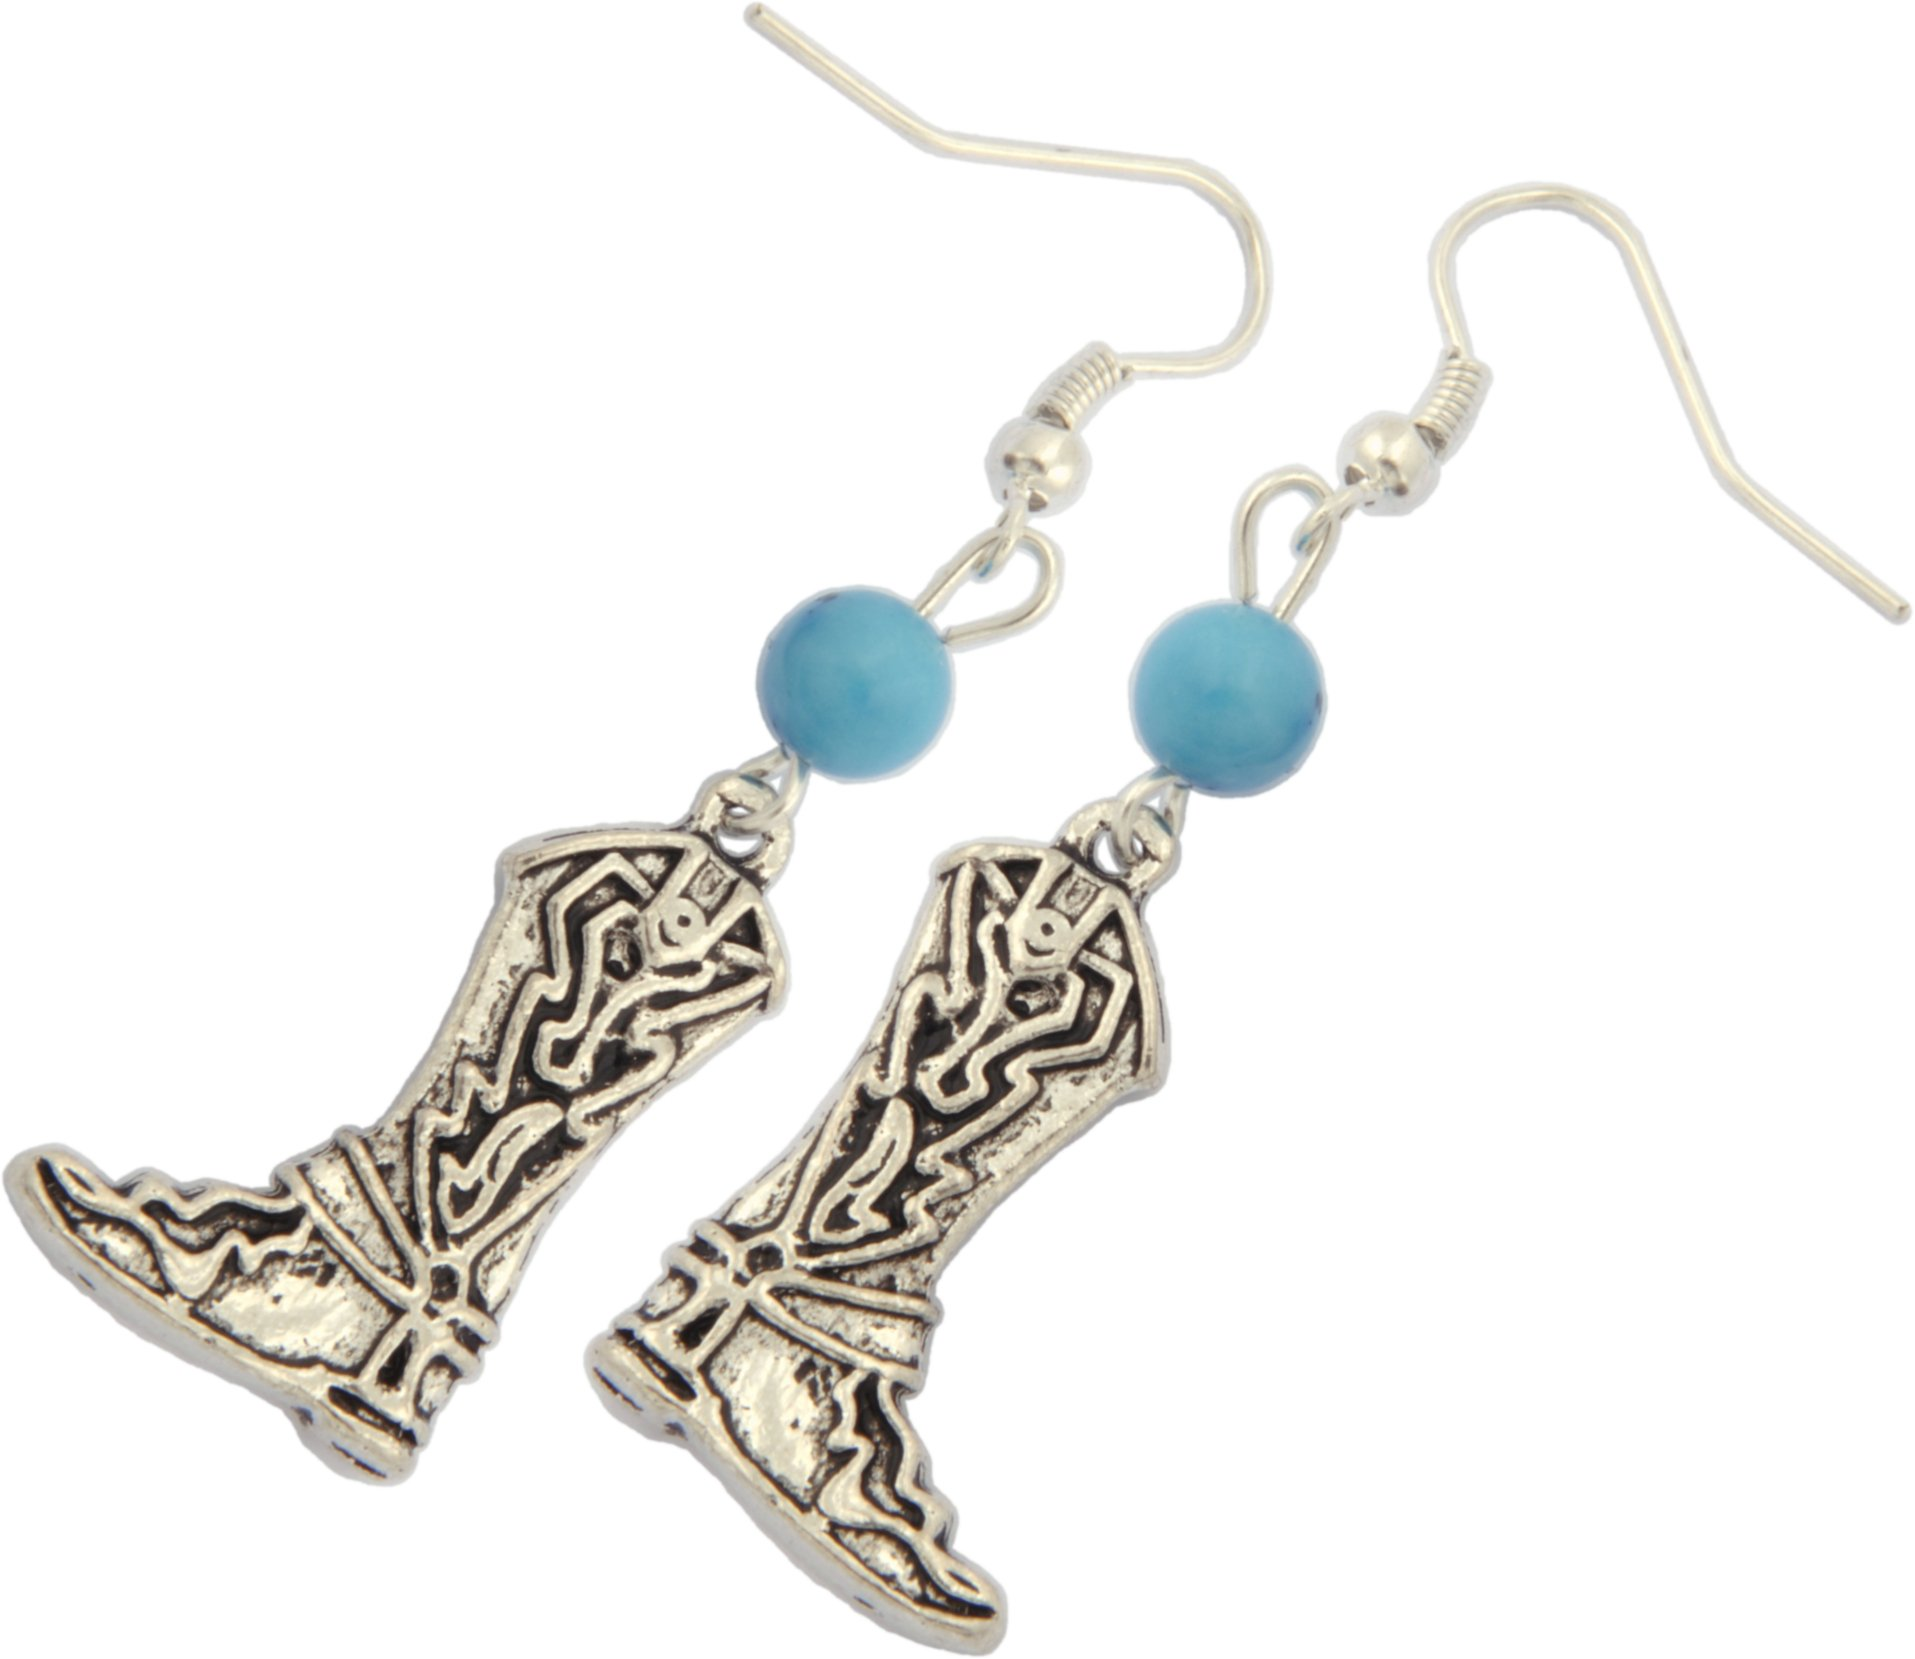 Earrings,Cowboy Boots with Turquoise Howlite Gemstone Dangle Earrings + FREE GIFT BAG